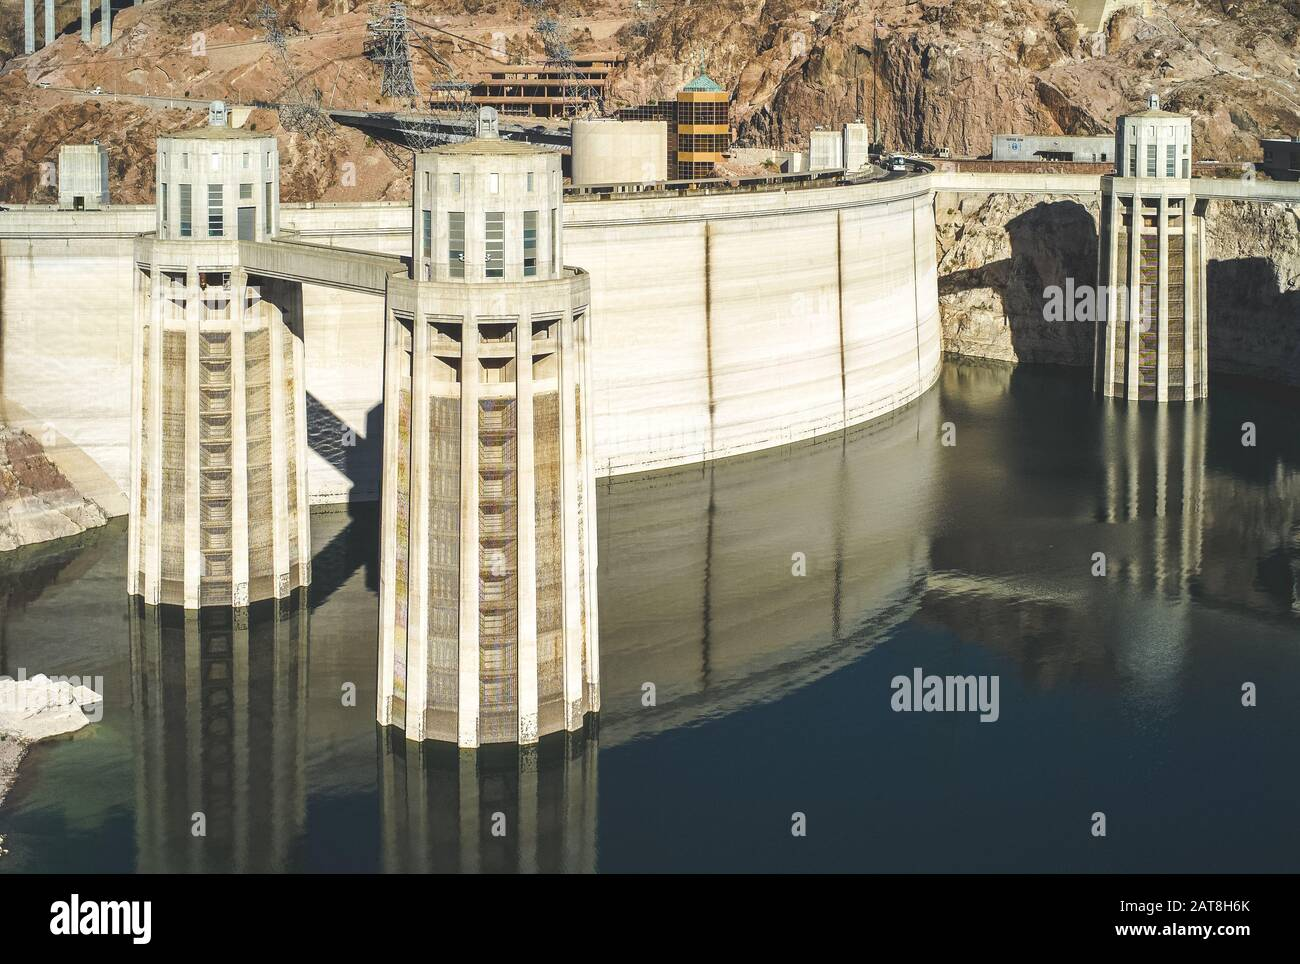 Boulder City, Nevada, United States: July 6 2009: Hoover Dam with Penstock Water Inlet Towers. A Concrete Arch Gravity Dam. Stock Photo